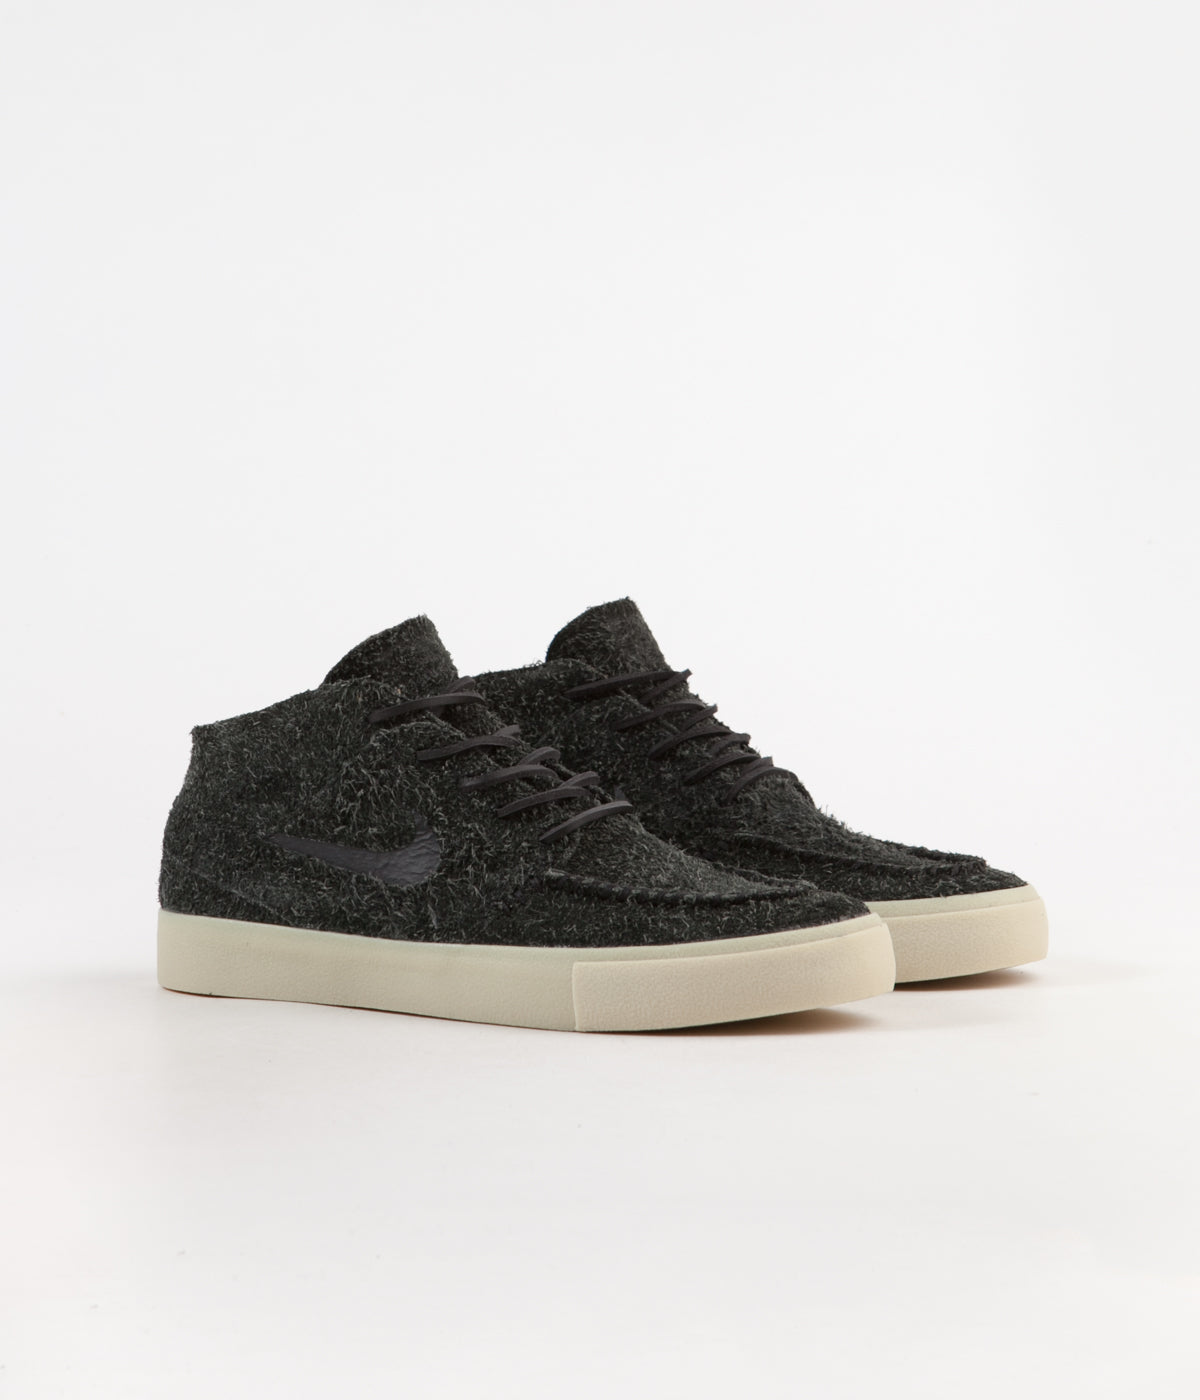 1b82b4e6d1854 ... Nike SB Janoski Mid Crafted Shoes - Black   Black - Golden Beige - Team  Gold ...